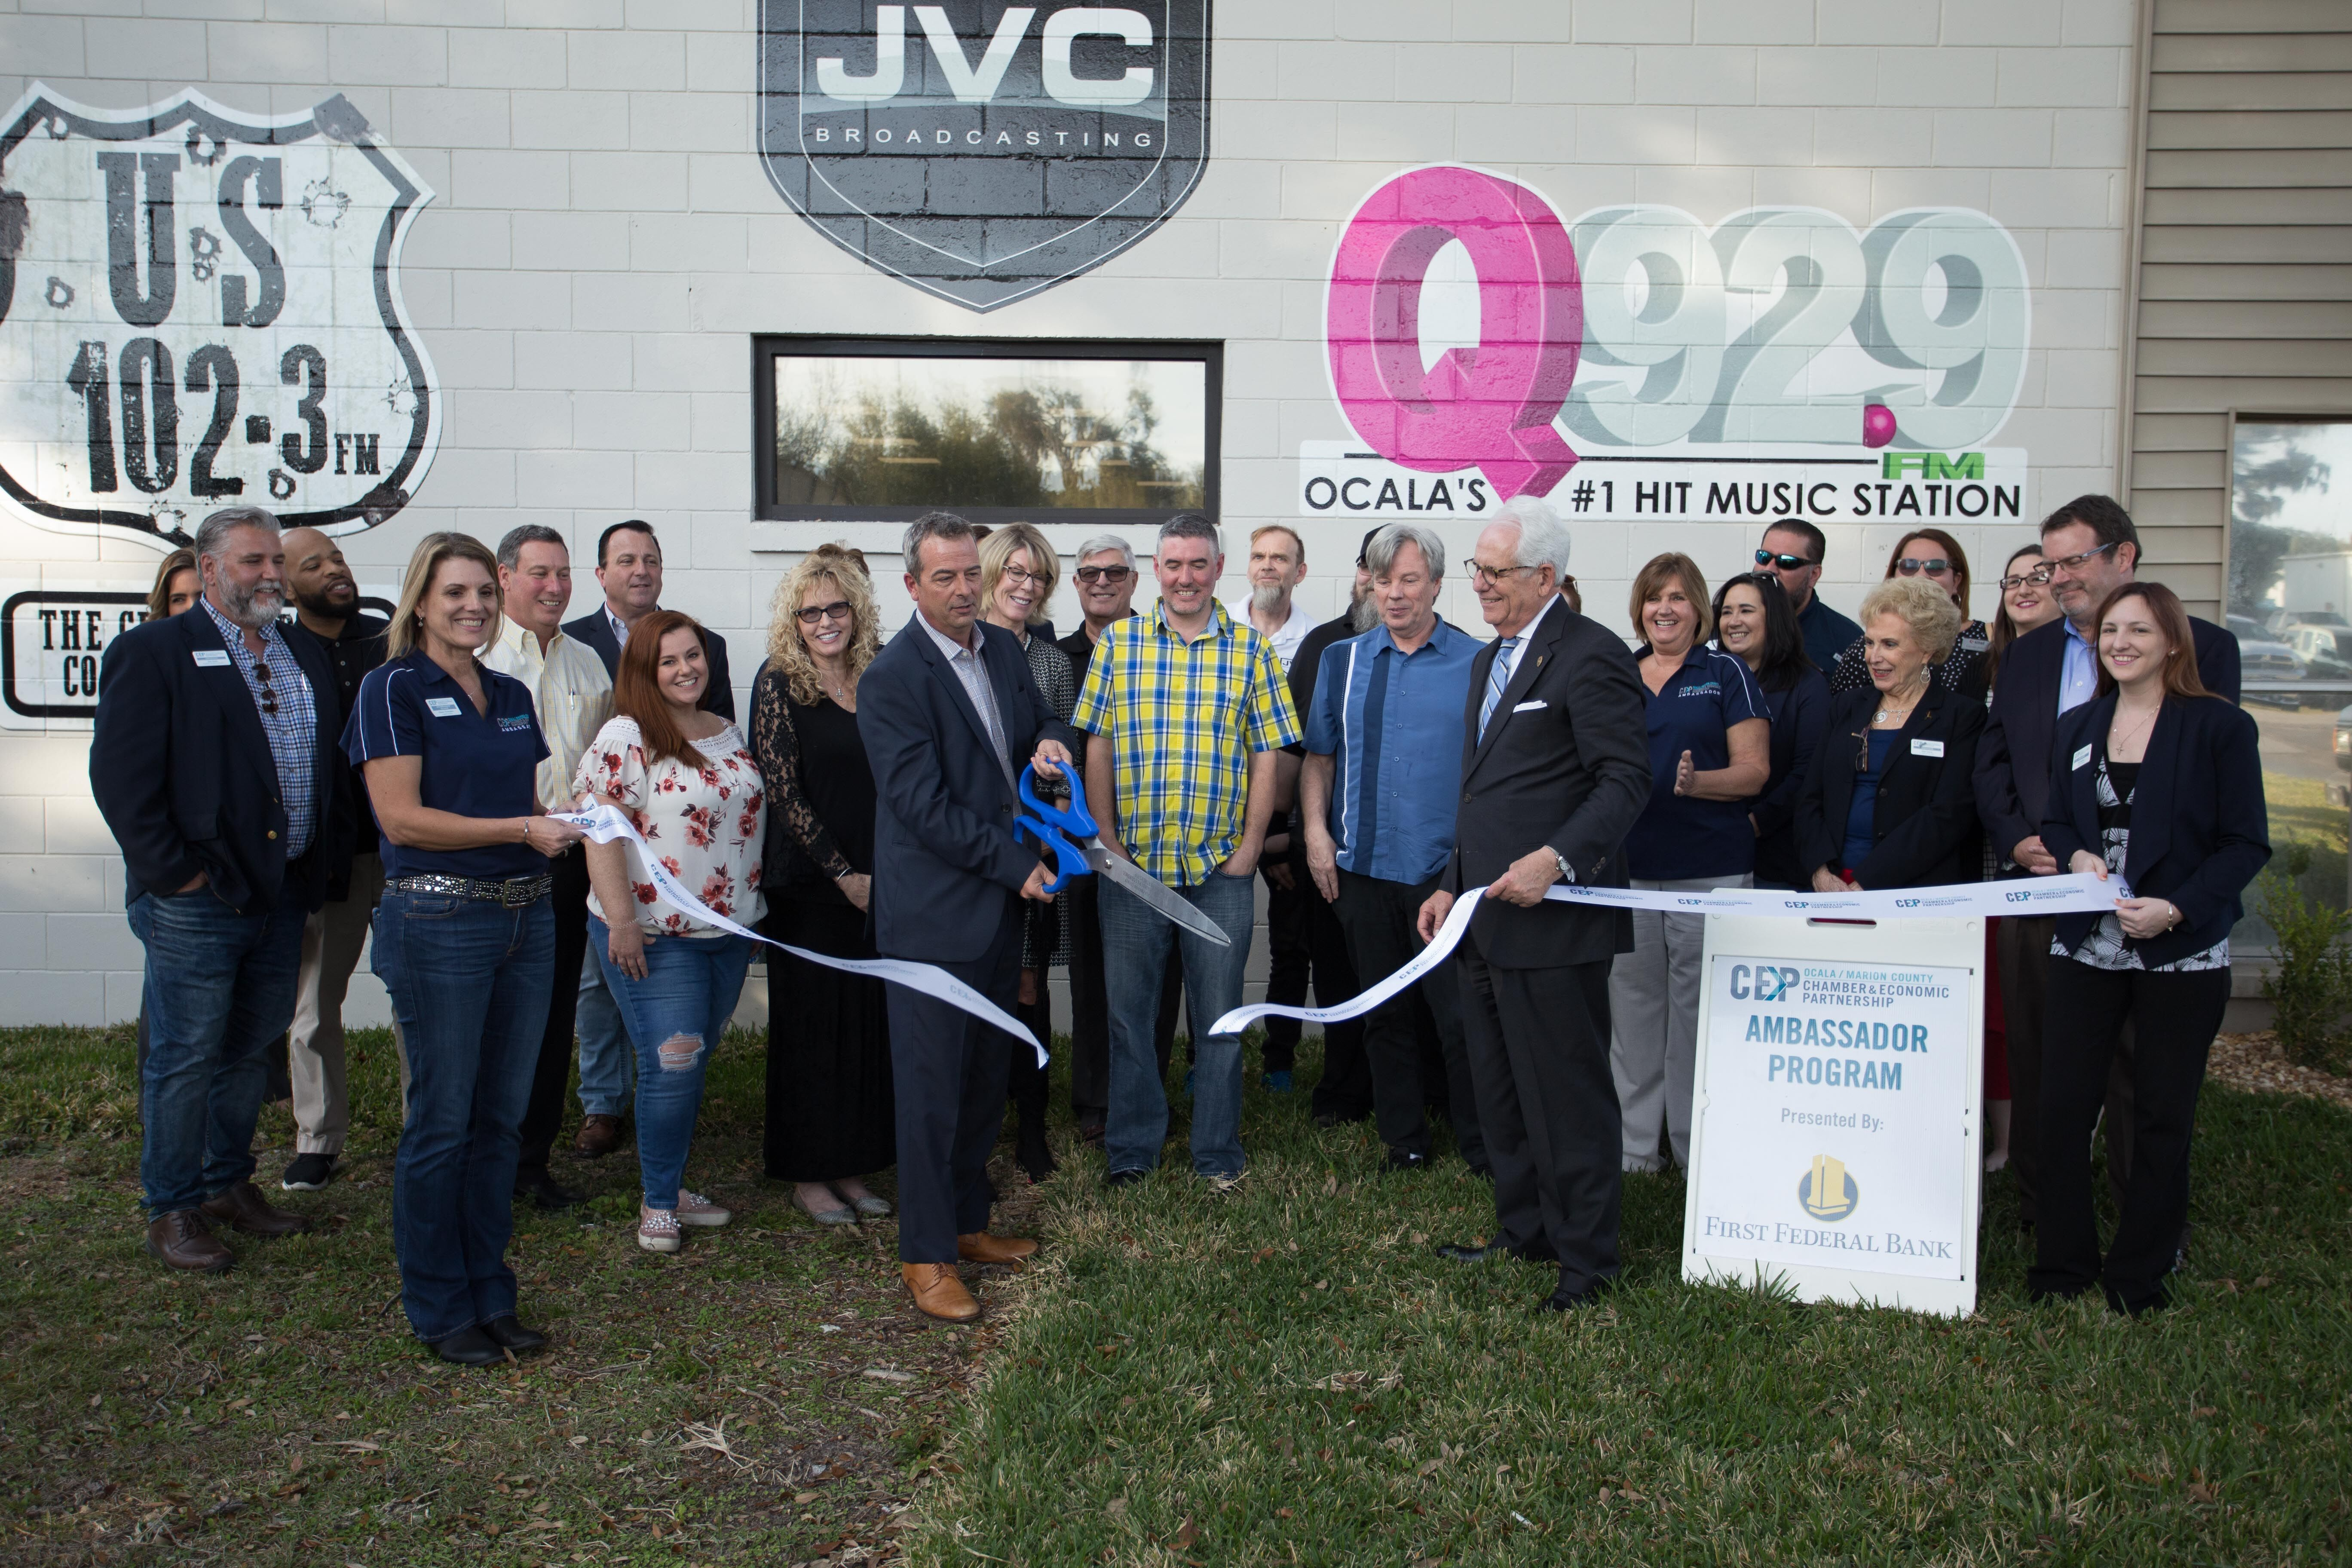 JVC Broadcasting Ribbon Cutting